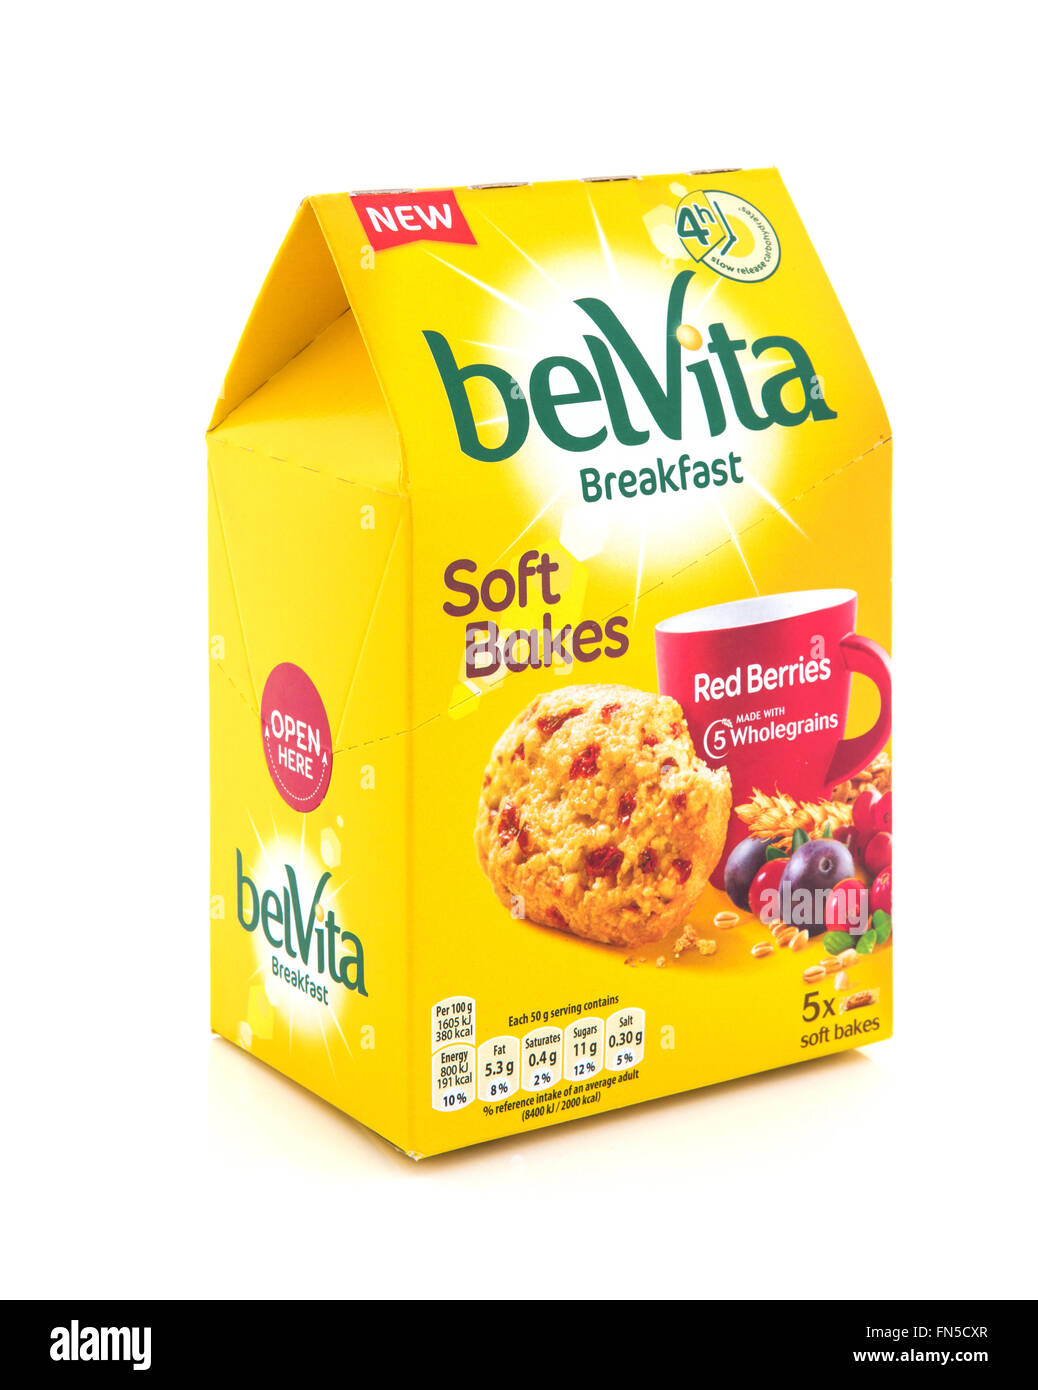 Belvita Soft Bakes Breakfast with Red Berries and wholegrains on a white background - Stock Image